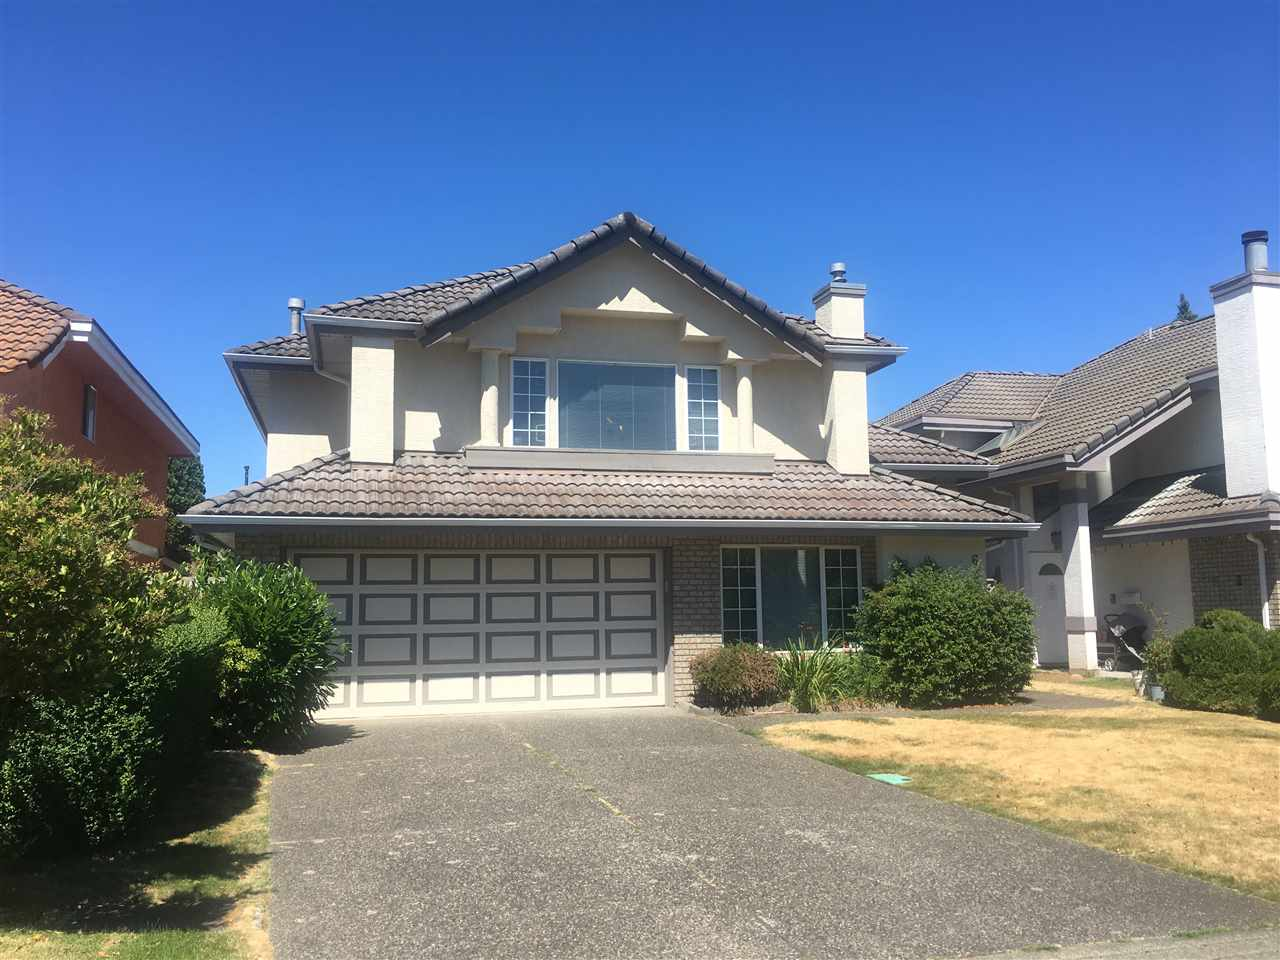 Detached at 6191 MARTYNIUK PLACE, Richmond, British Columbia. Image 1